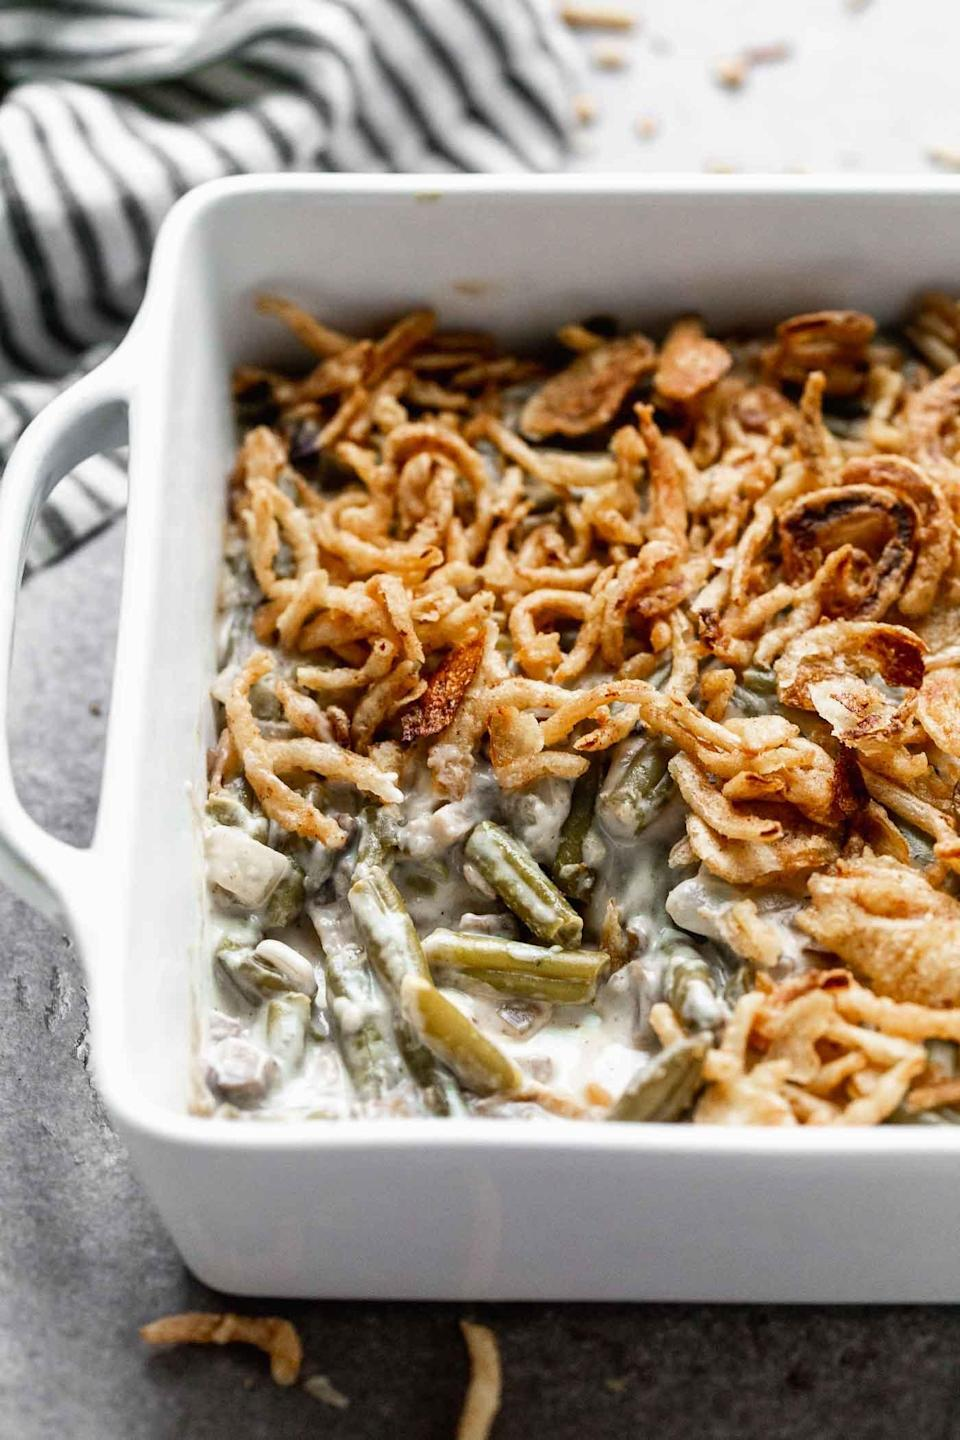 """<p>Your friends will all want this recipe - and they'll love how easy it is.</p> <p><b>Get the recipe:</b> <a href=""""http://www.cookingforkeeps.com/green-bean-casserole/"""" class=""""link rapid-noclick-resp"""" rel=""""nofollow noopener"""" target=""""_blank"""" data-ylk=""""slk:simple green bean casserole"""">simple green bean casserole</a></p>"""